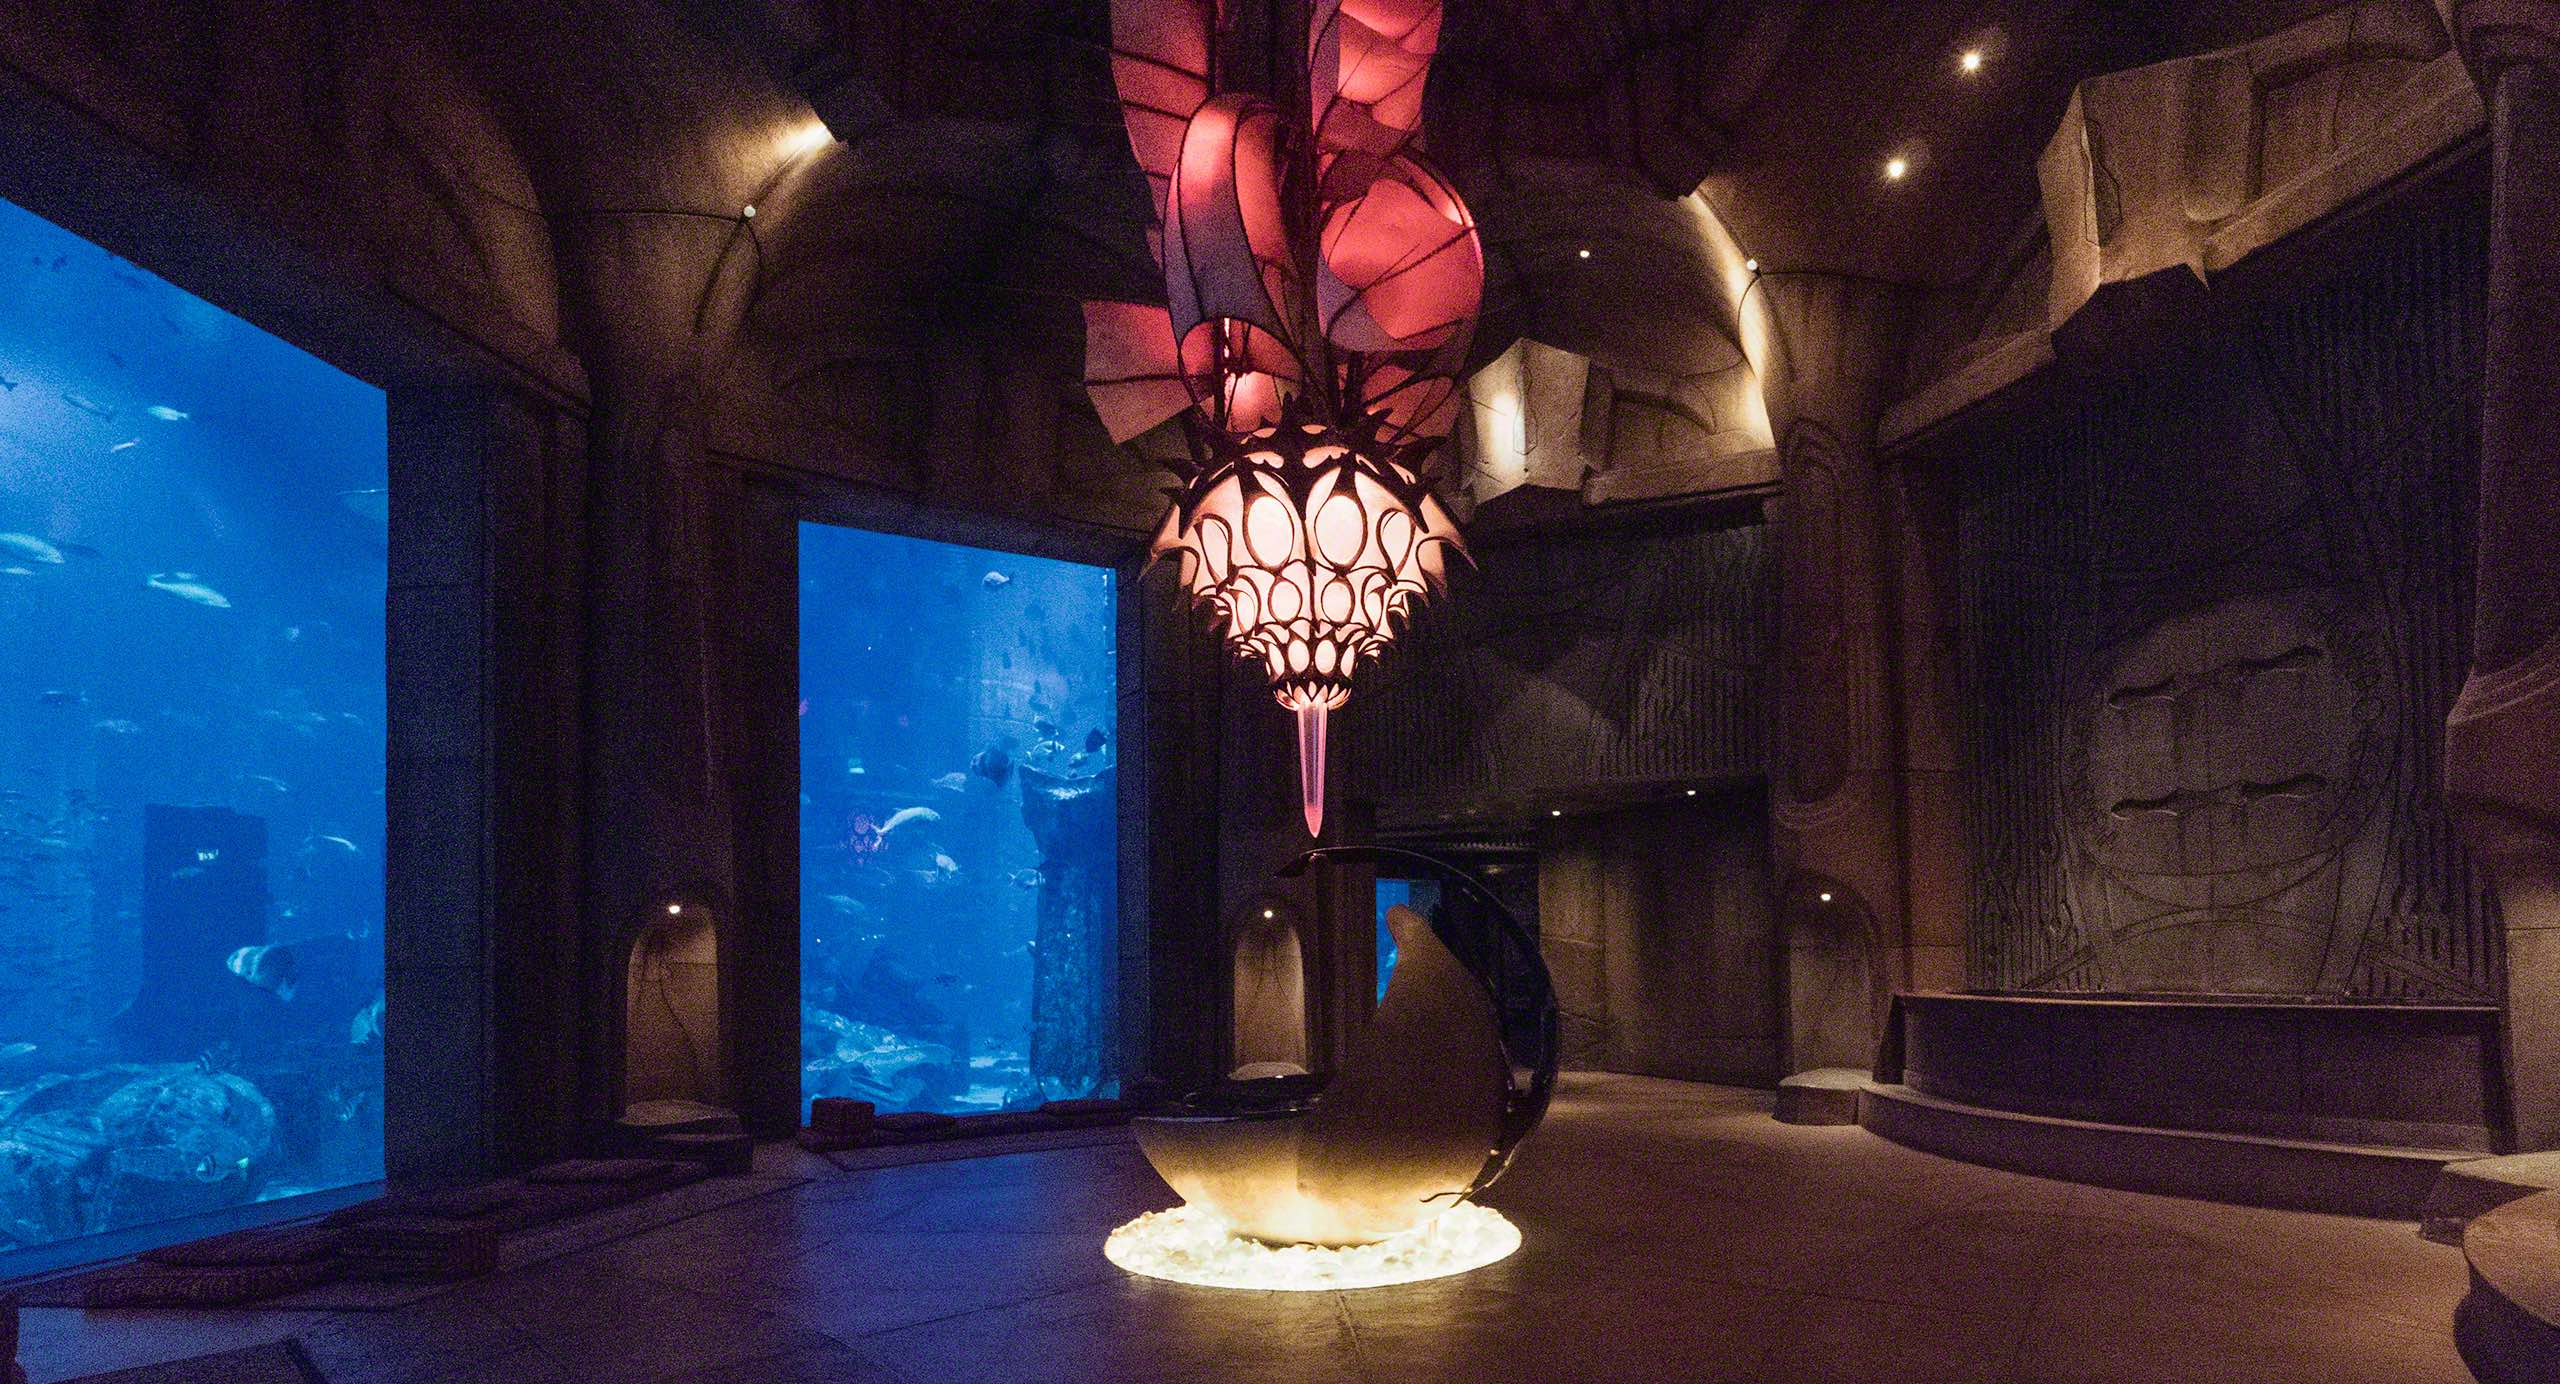 Lost Chambers Aquarium im Atlantis The Palm. Foto © Mirco Seyfert